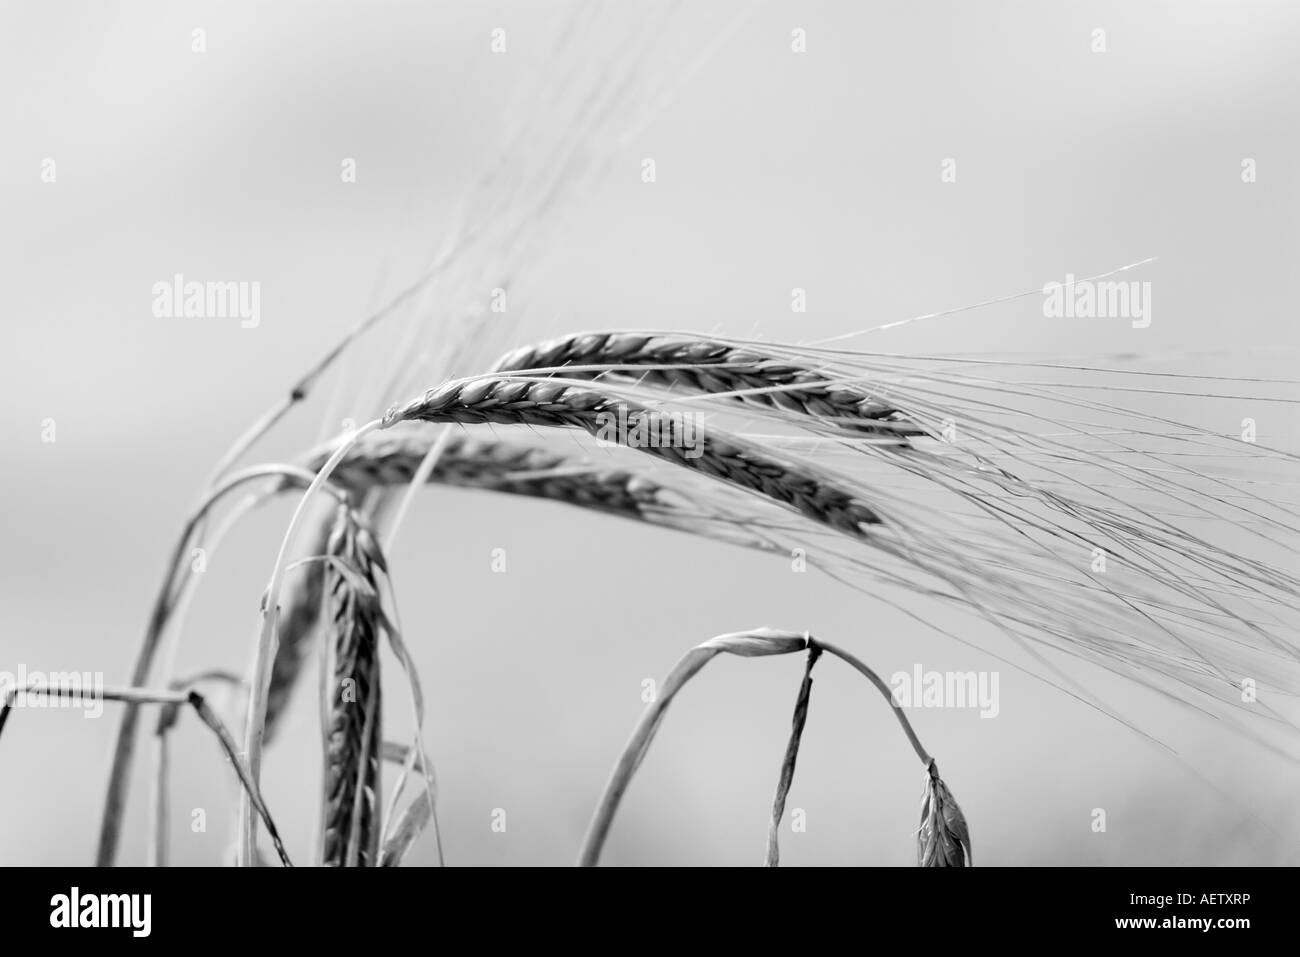 Black and White Wheat in a field - Stock Image